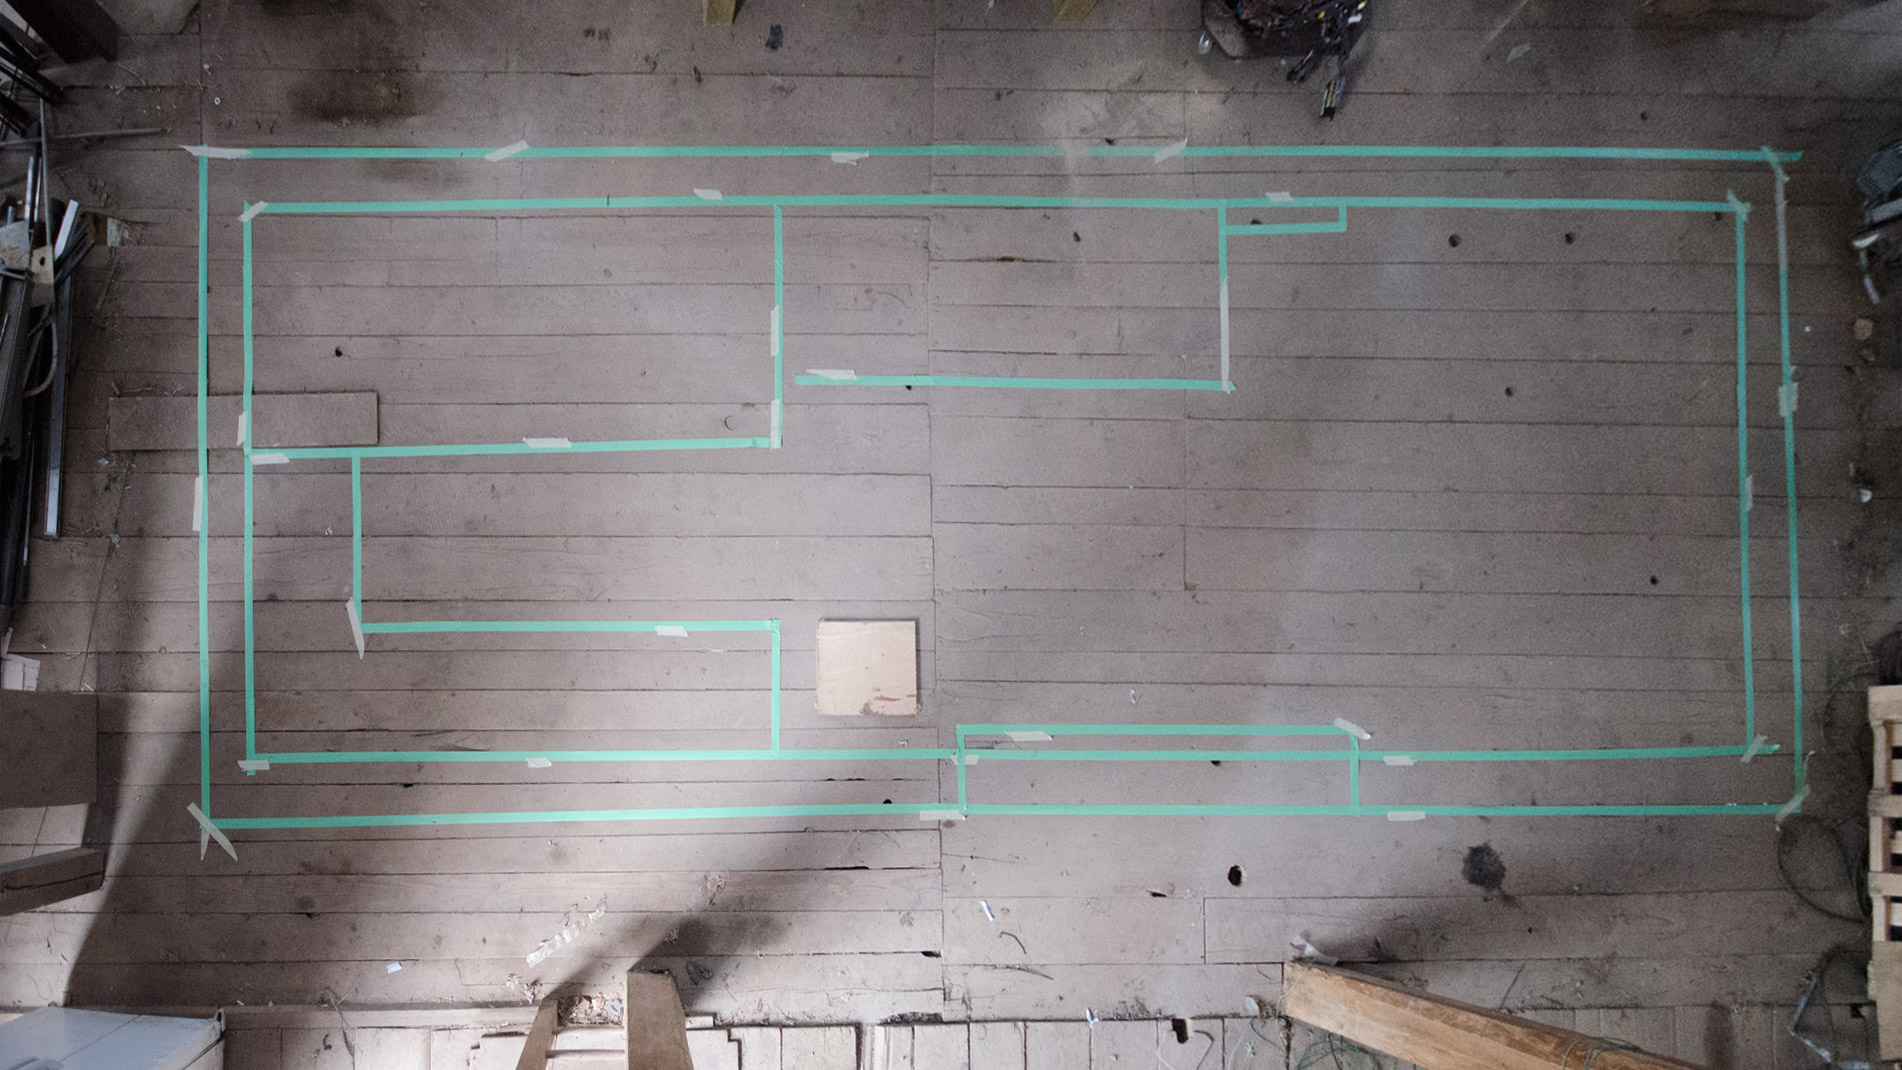 Rough Tape layout of the Tiny Home